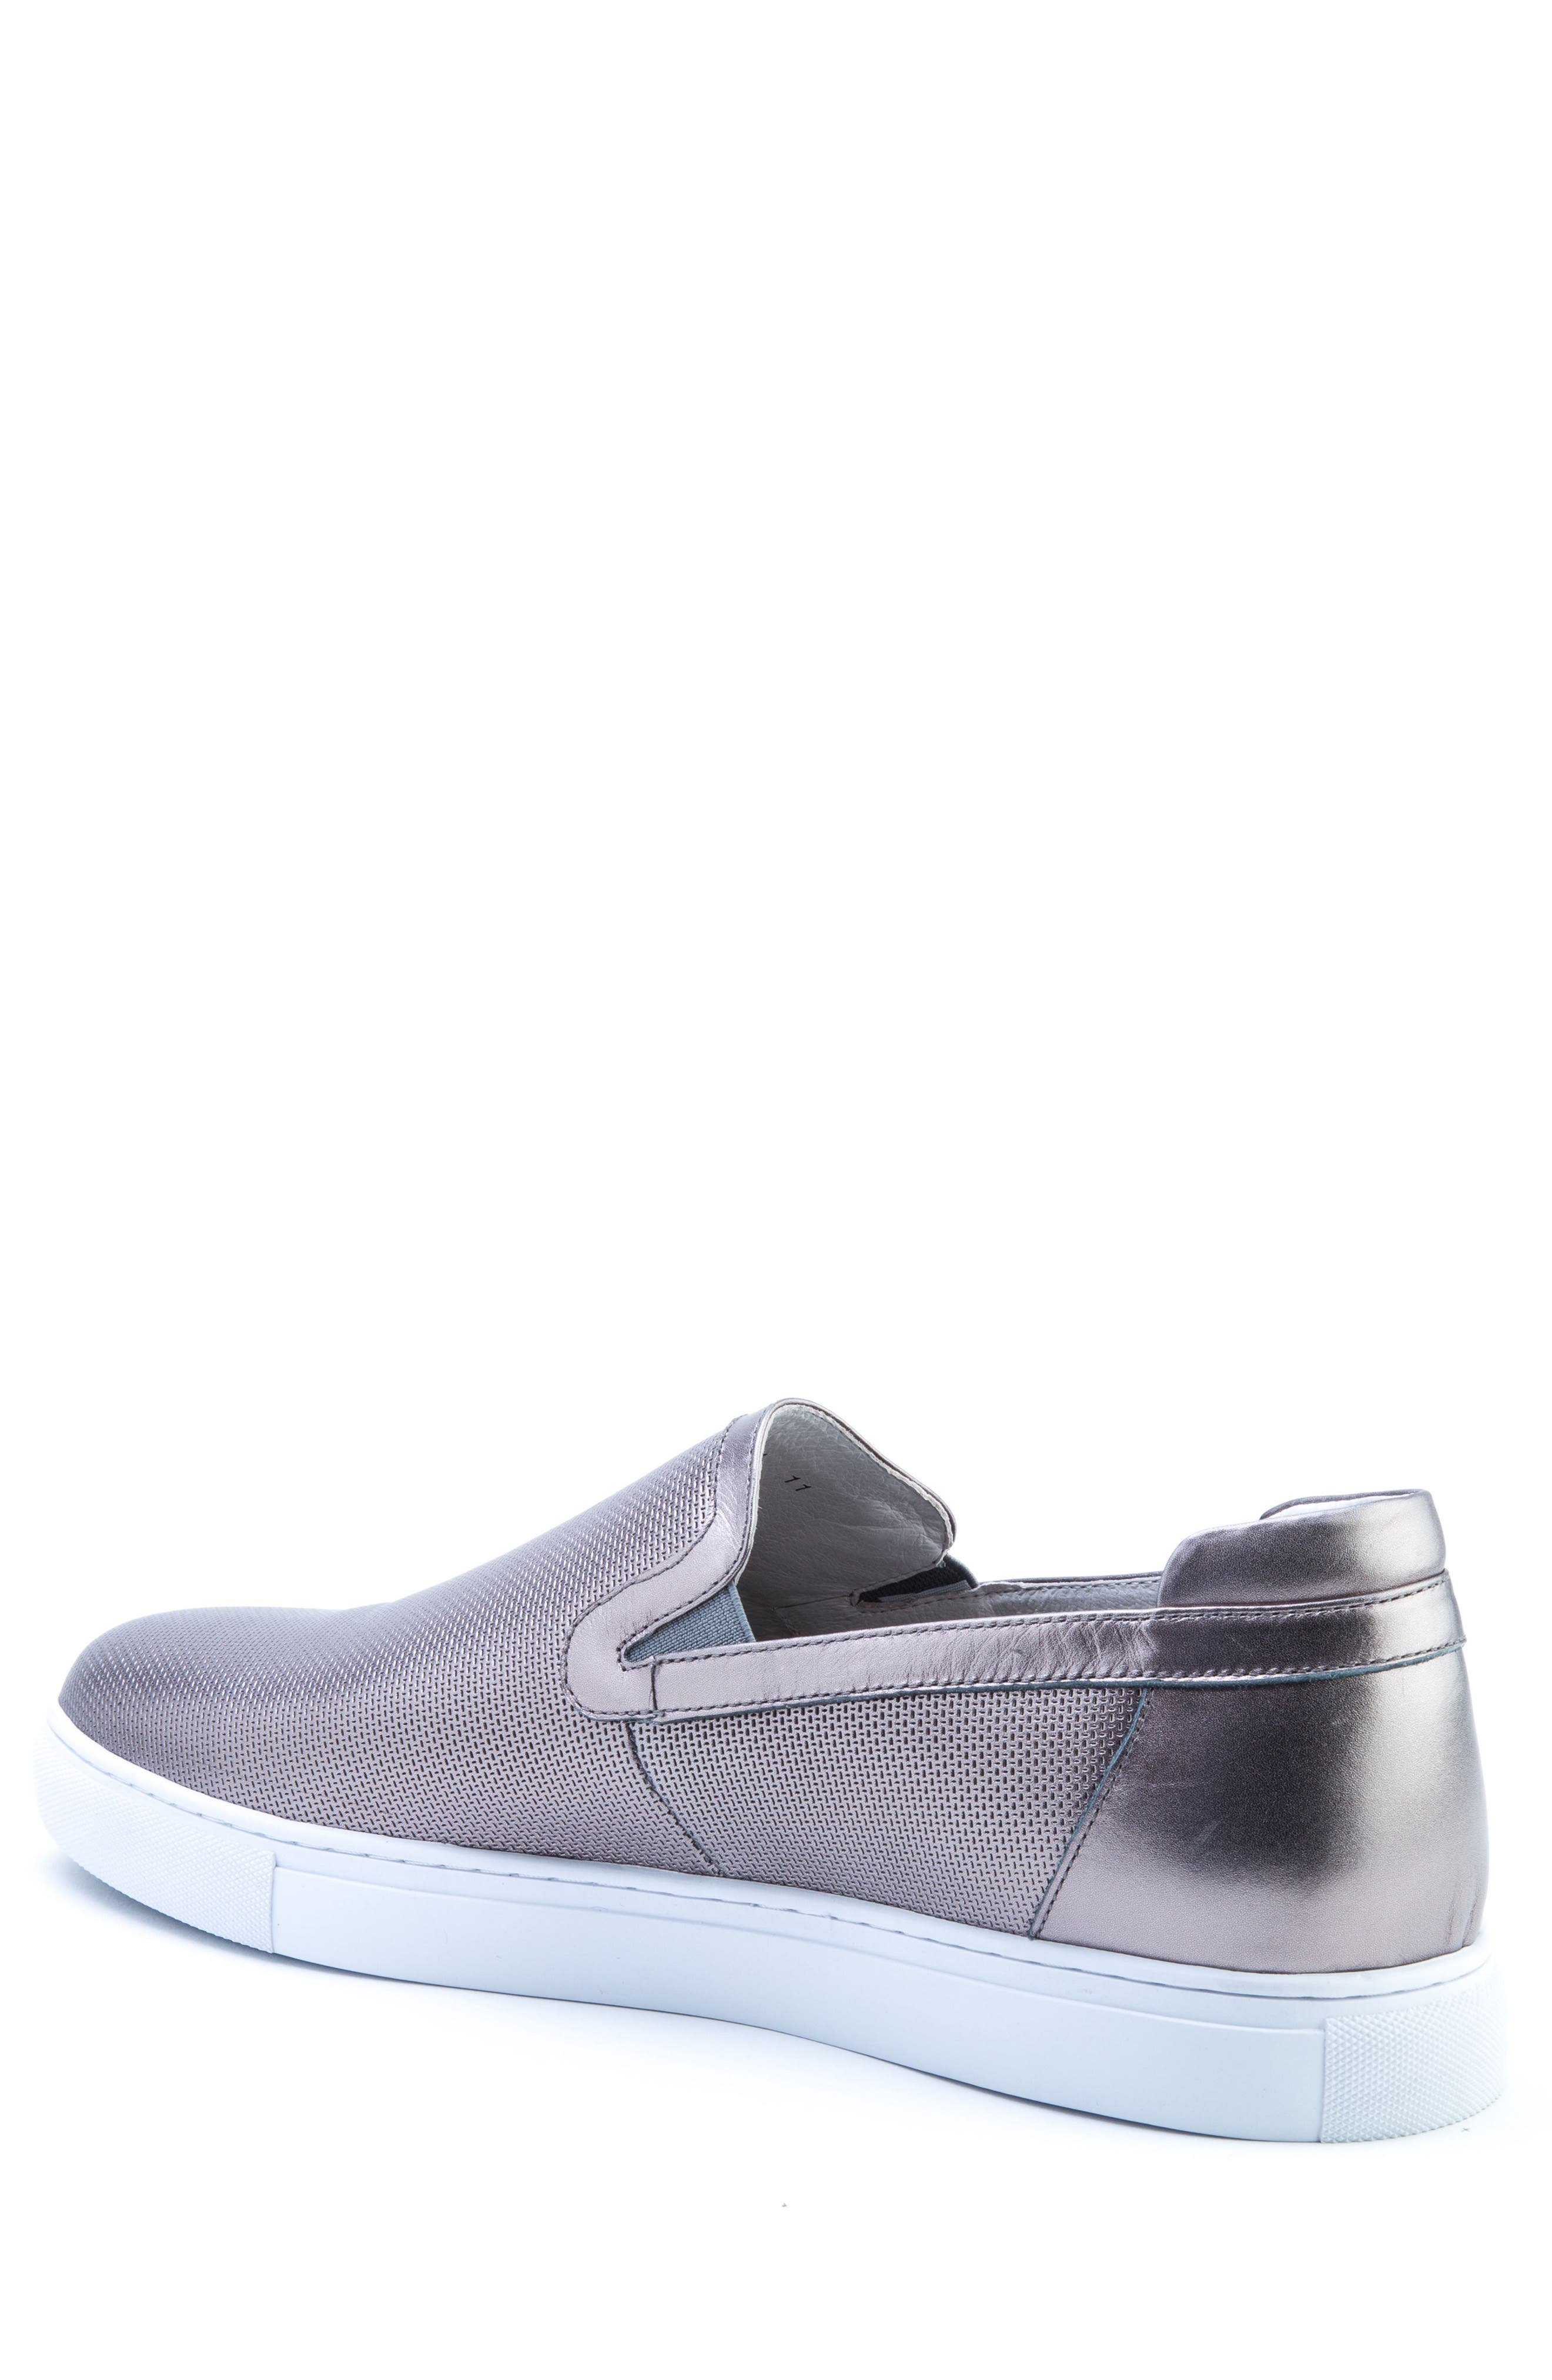 Alternate Image 2  - Badgley Mischka Grant Sneaker (Men)